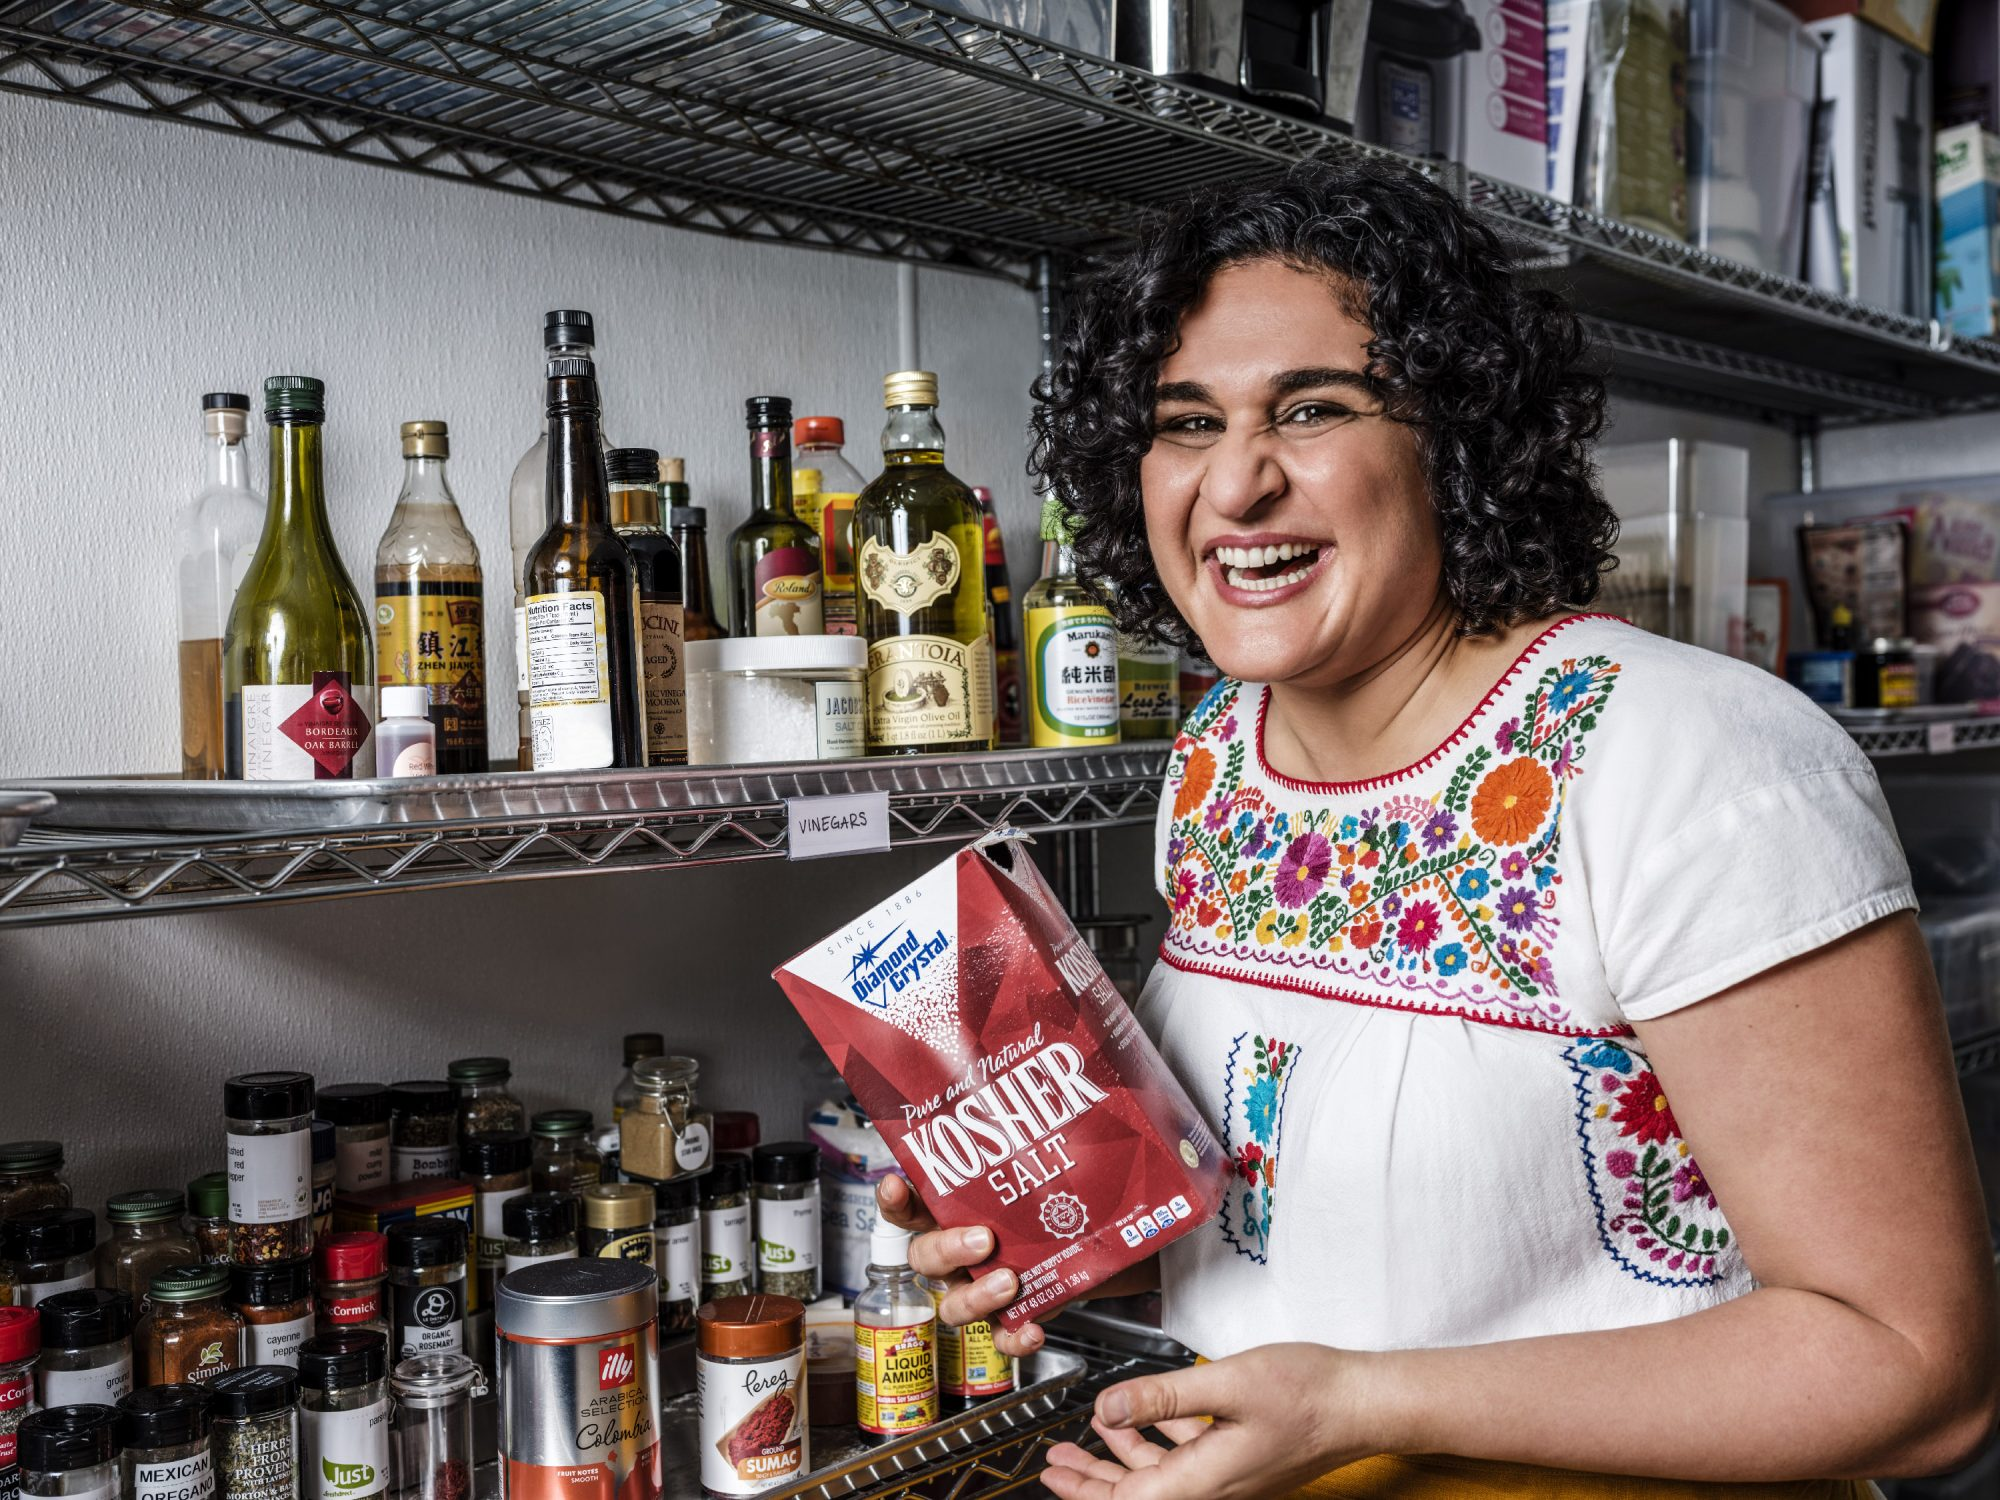 Samin Nosrat, author of Salt, Fat, Acid, Heat and star of the Netflix show of the same name, photographed in New York City on February 15, 2019.